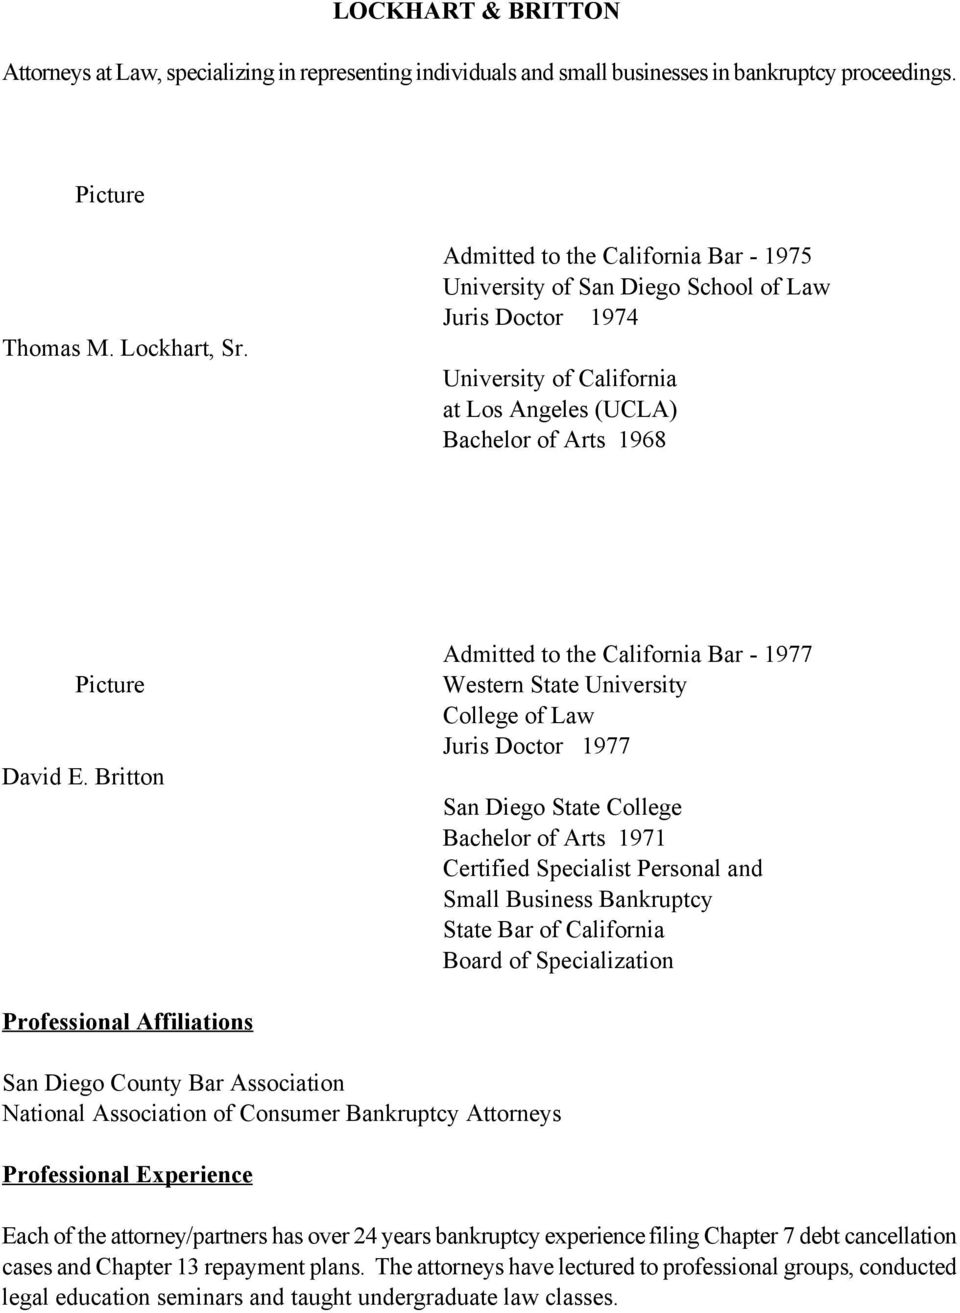 Britton Admitted to the California Bar - 1977 Western State University College of Law Juris Doctor 1977 San Diego State College Bachelor of Arts 1971 Certified Specialist Personal and Small Business